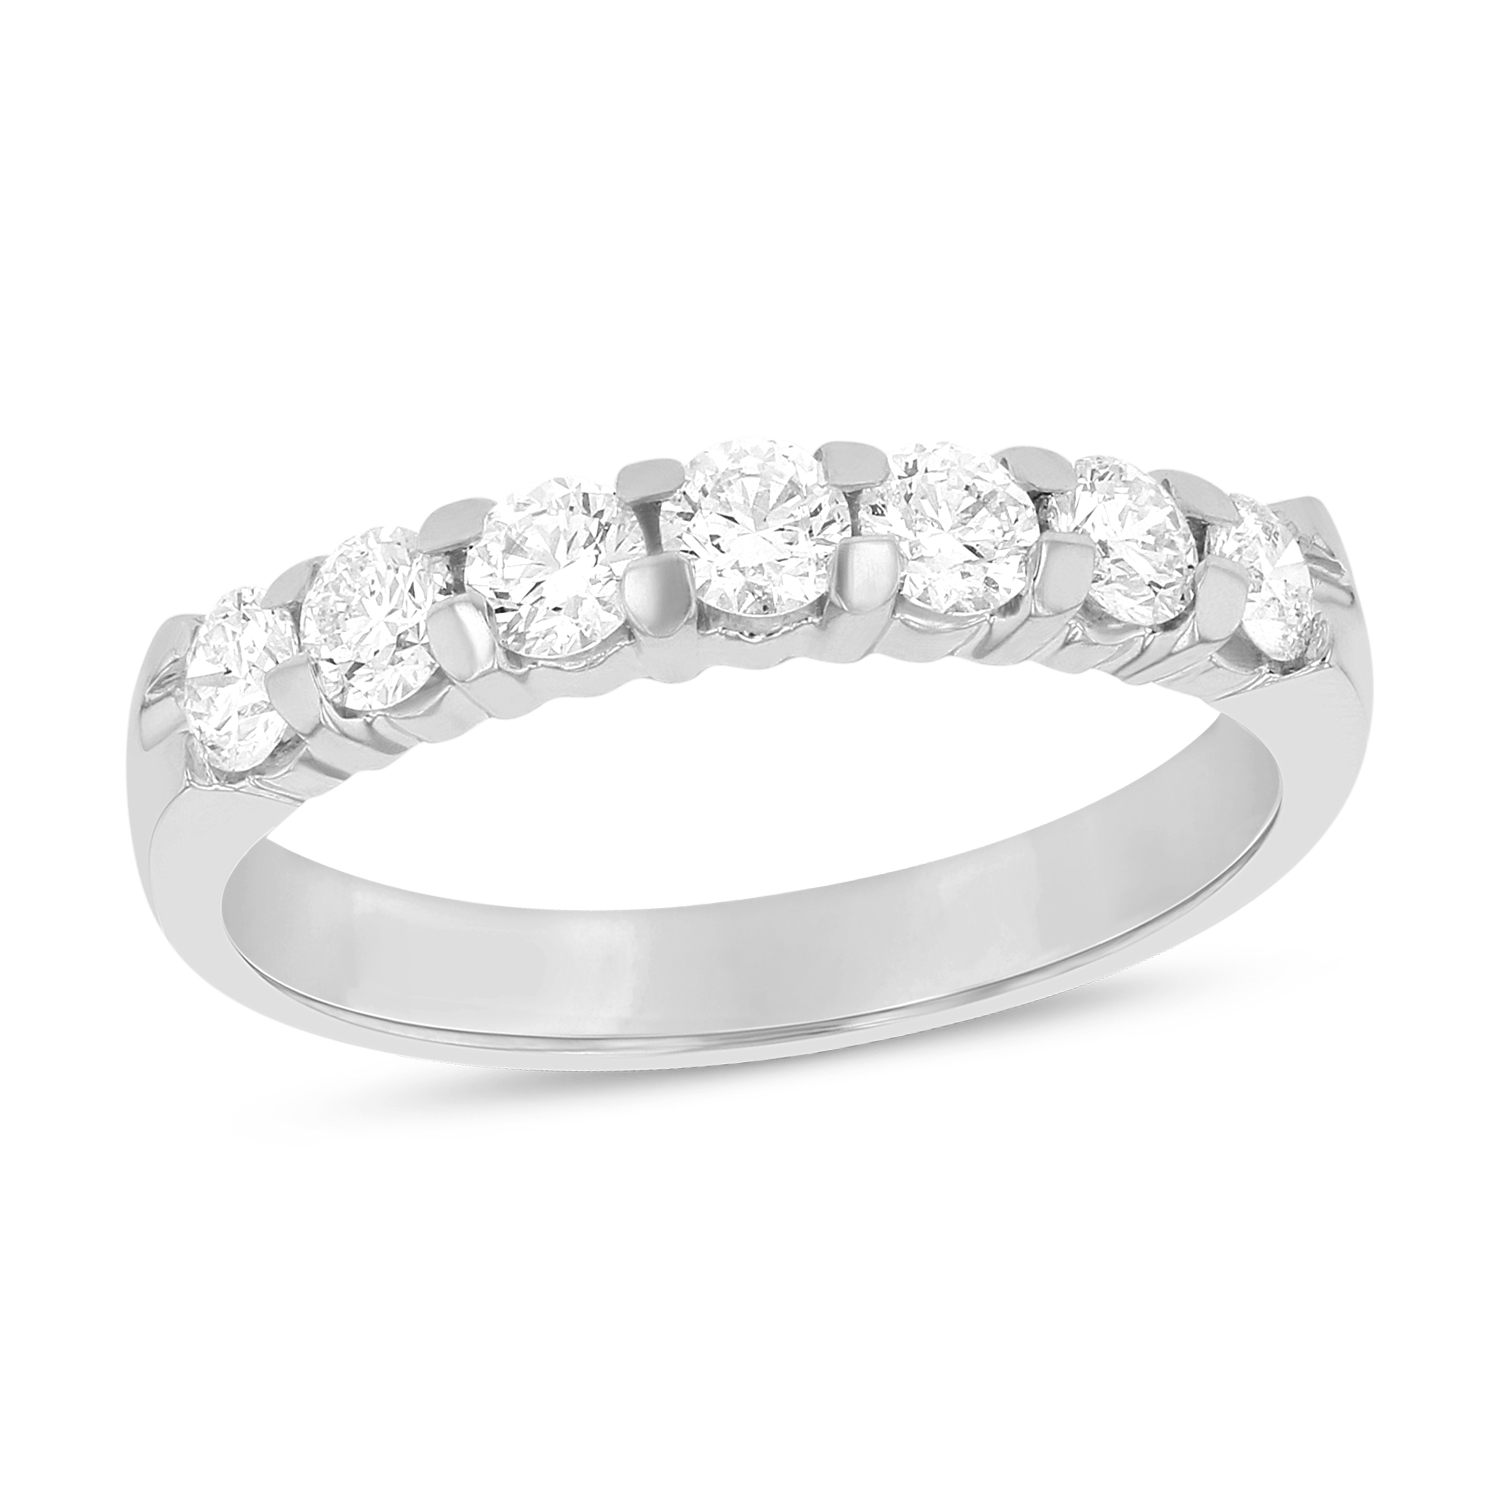 View 0.75ct tw 7 Stone Round Diamonds Shared Prong Anniversary or Wedding Band 14k Gold Bridal Ring H-J, SI